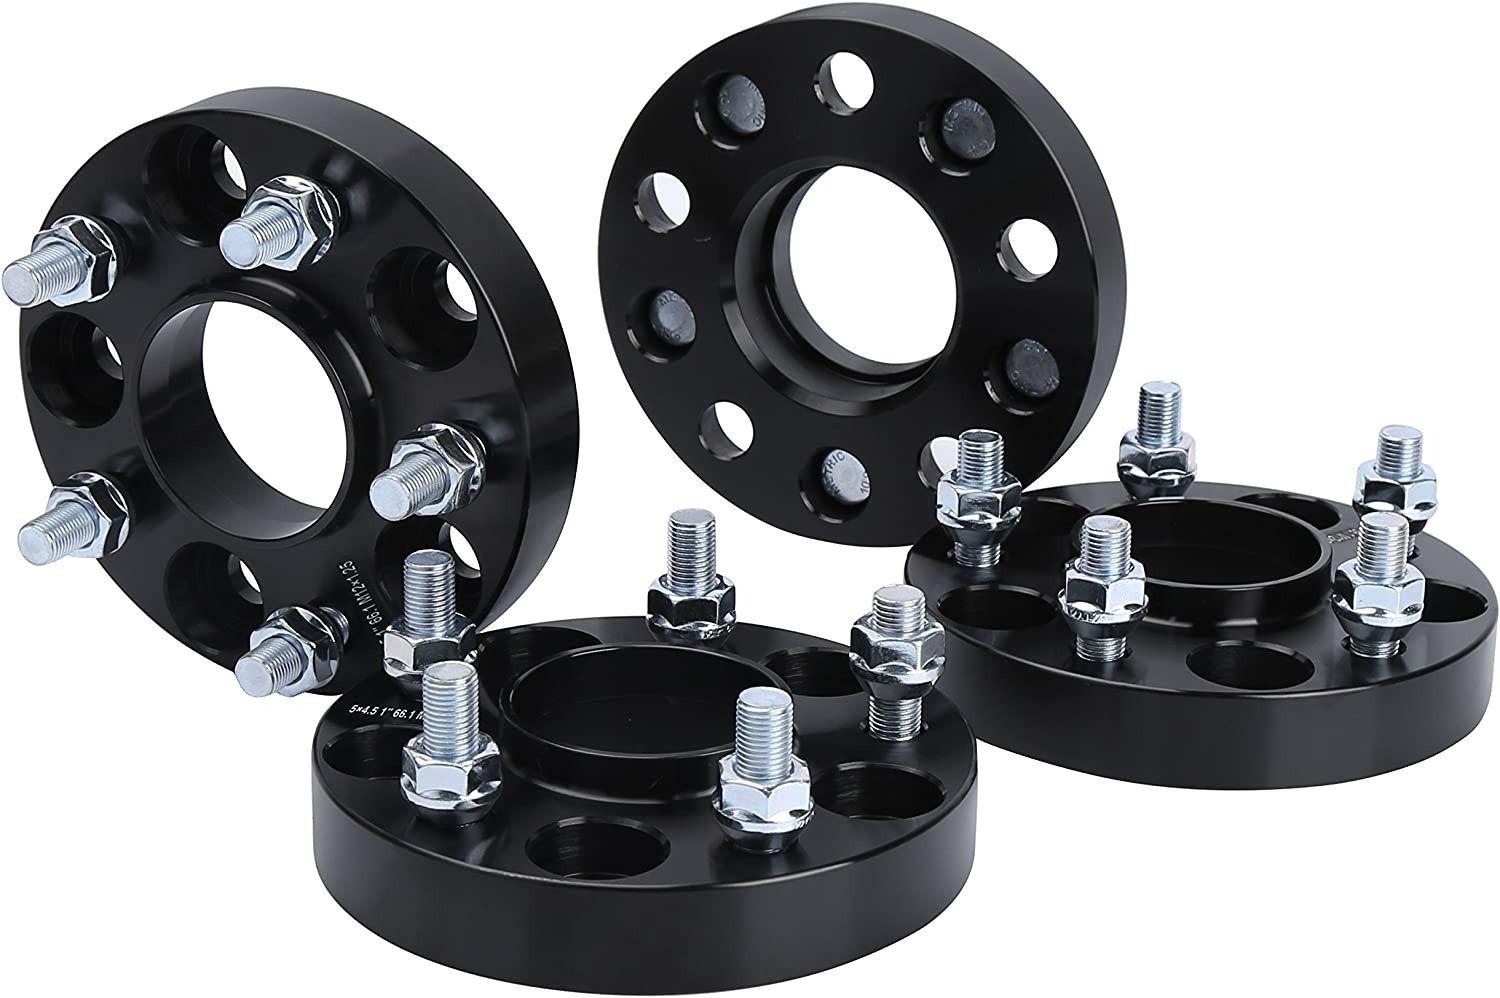 KSP Forged Wheel Spacers1 5x4.5 to 5x4.5 (5x114.3) Thread Pitch M12x1.25 Hub Bore 66.1mm 5 Lug Hub Centric 25mm Wheel Adapters for 350Z 370Z G35 G37 FX35, 4Pcs